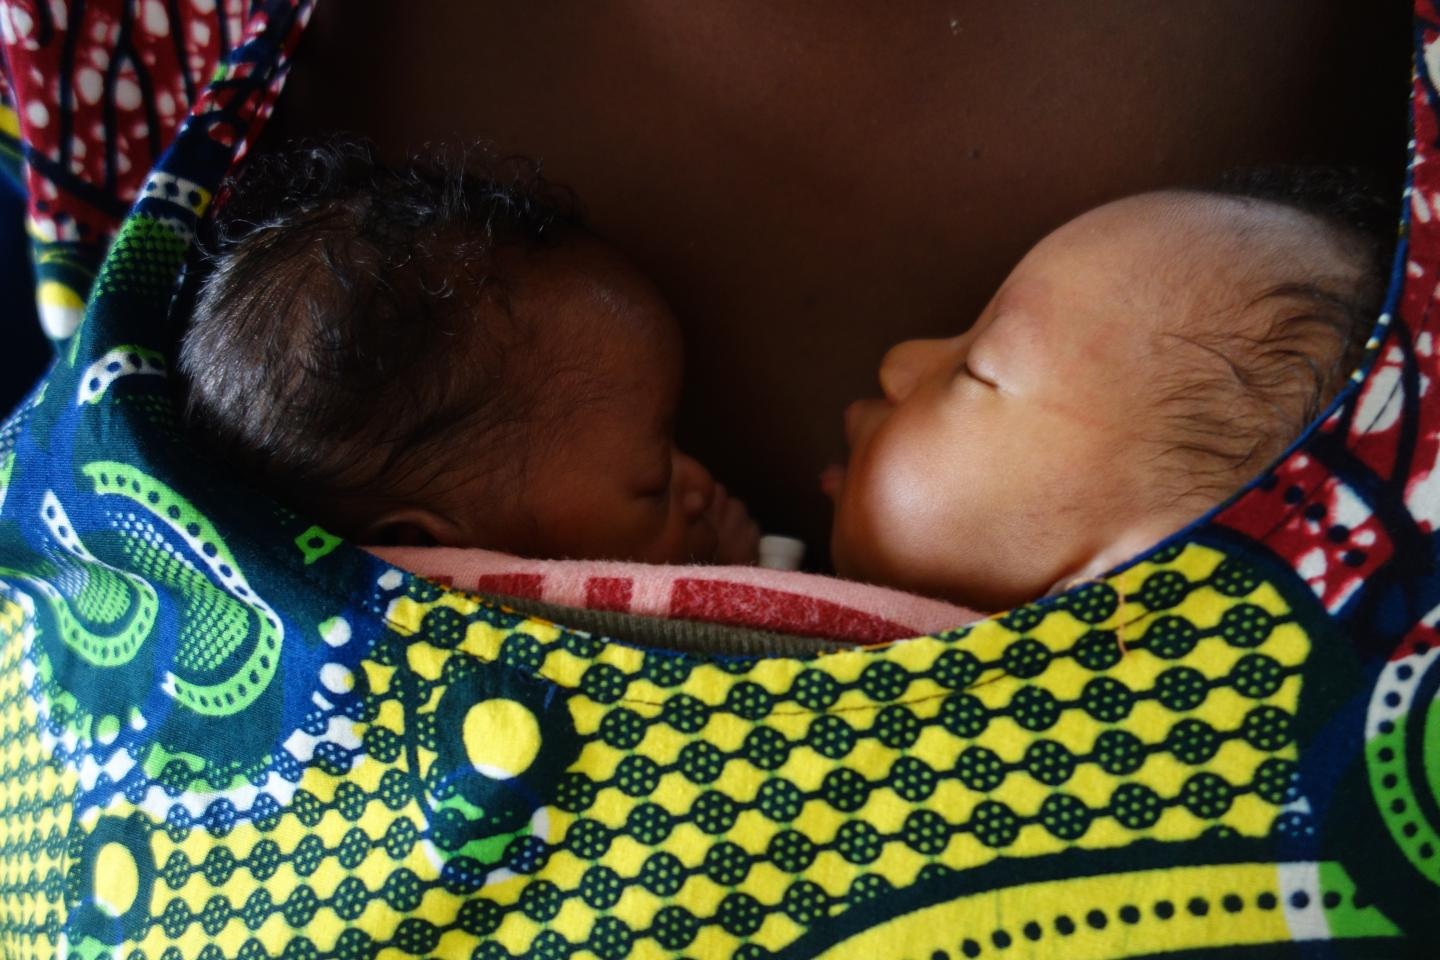 Kangaroo mother care helps premature babies thrive 20 years later — study